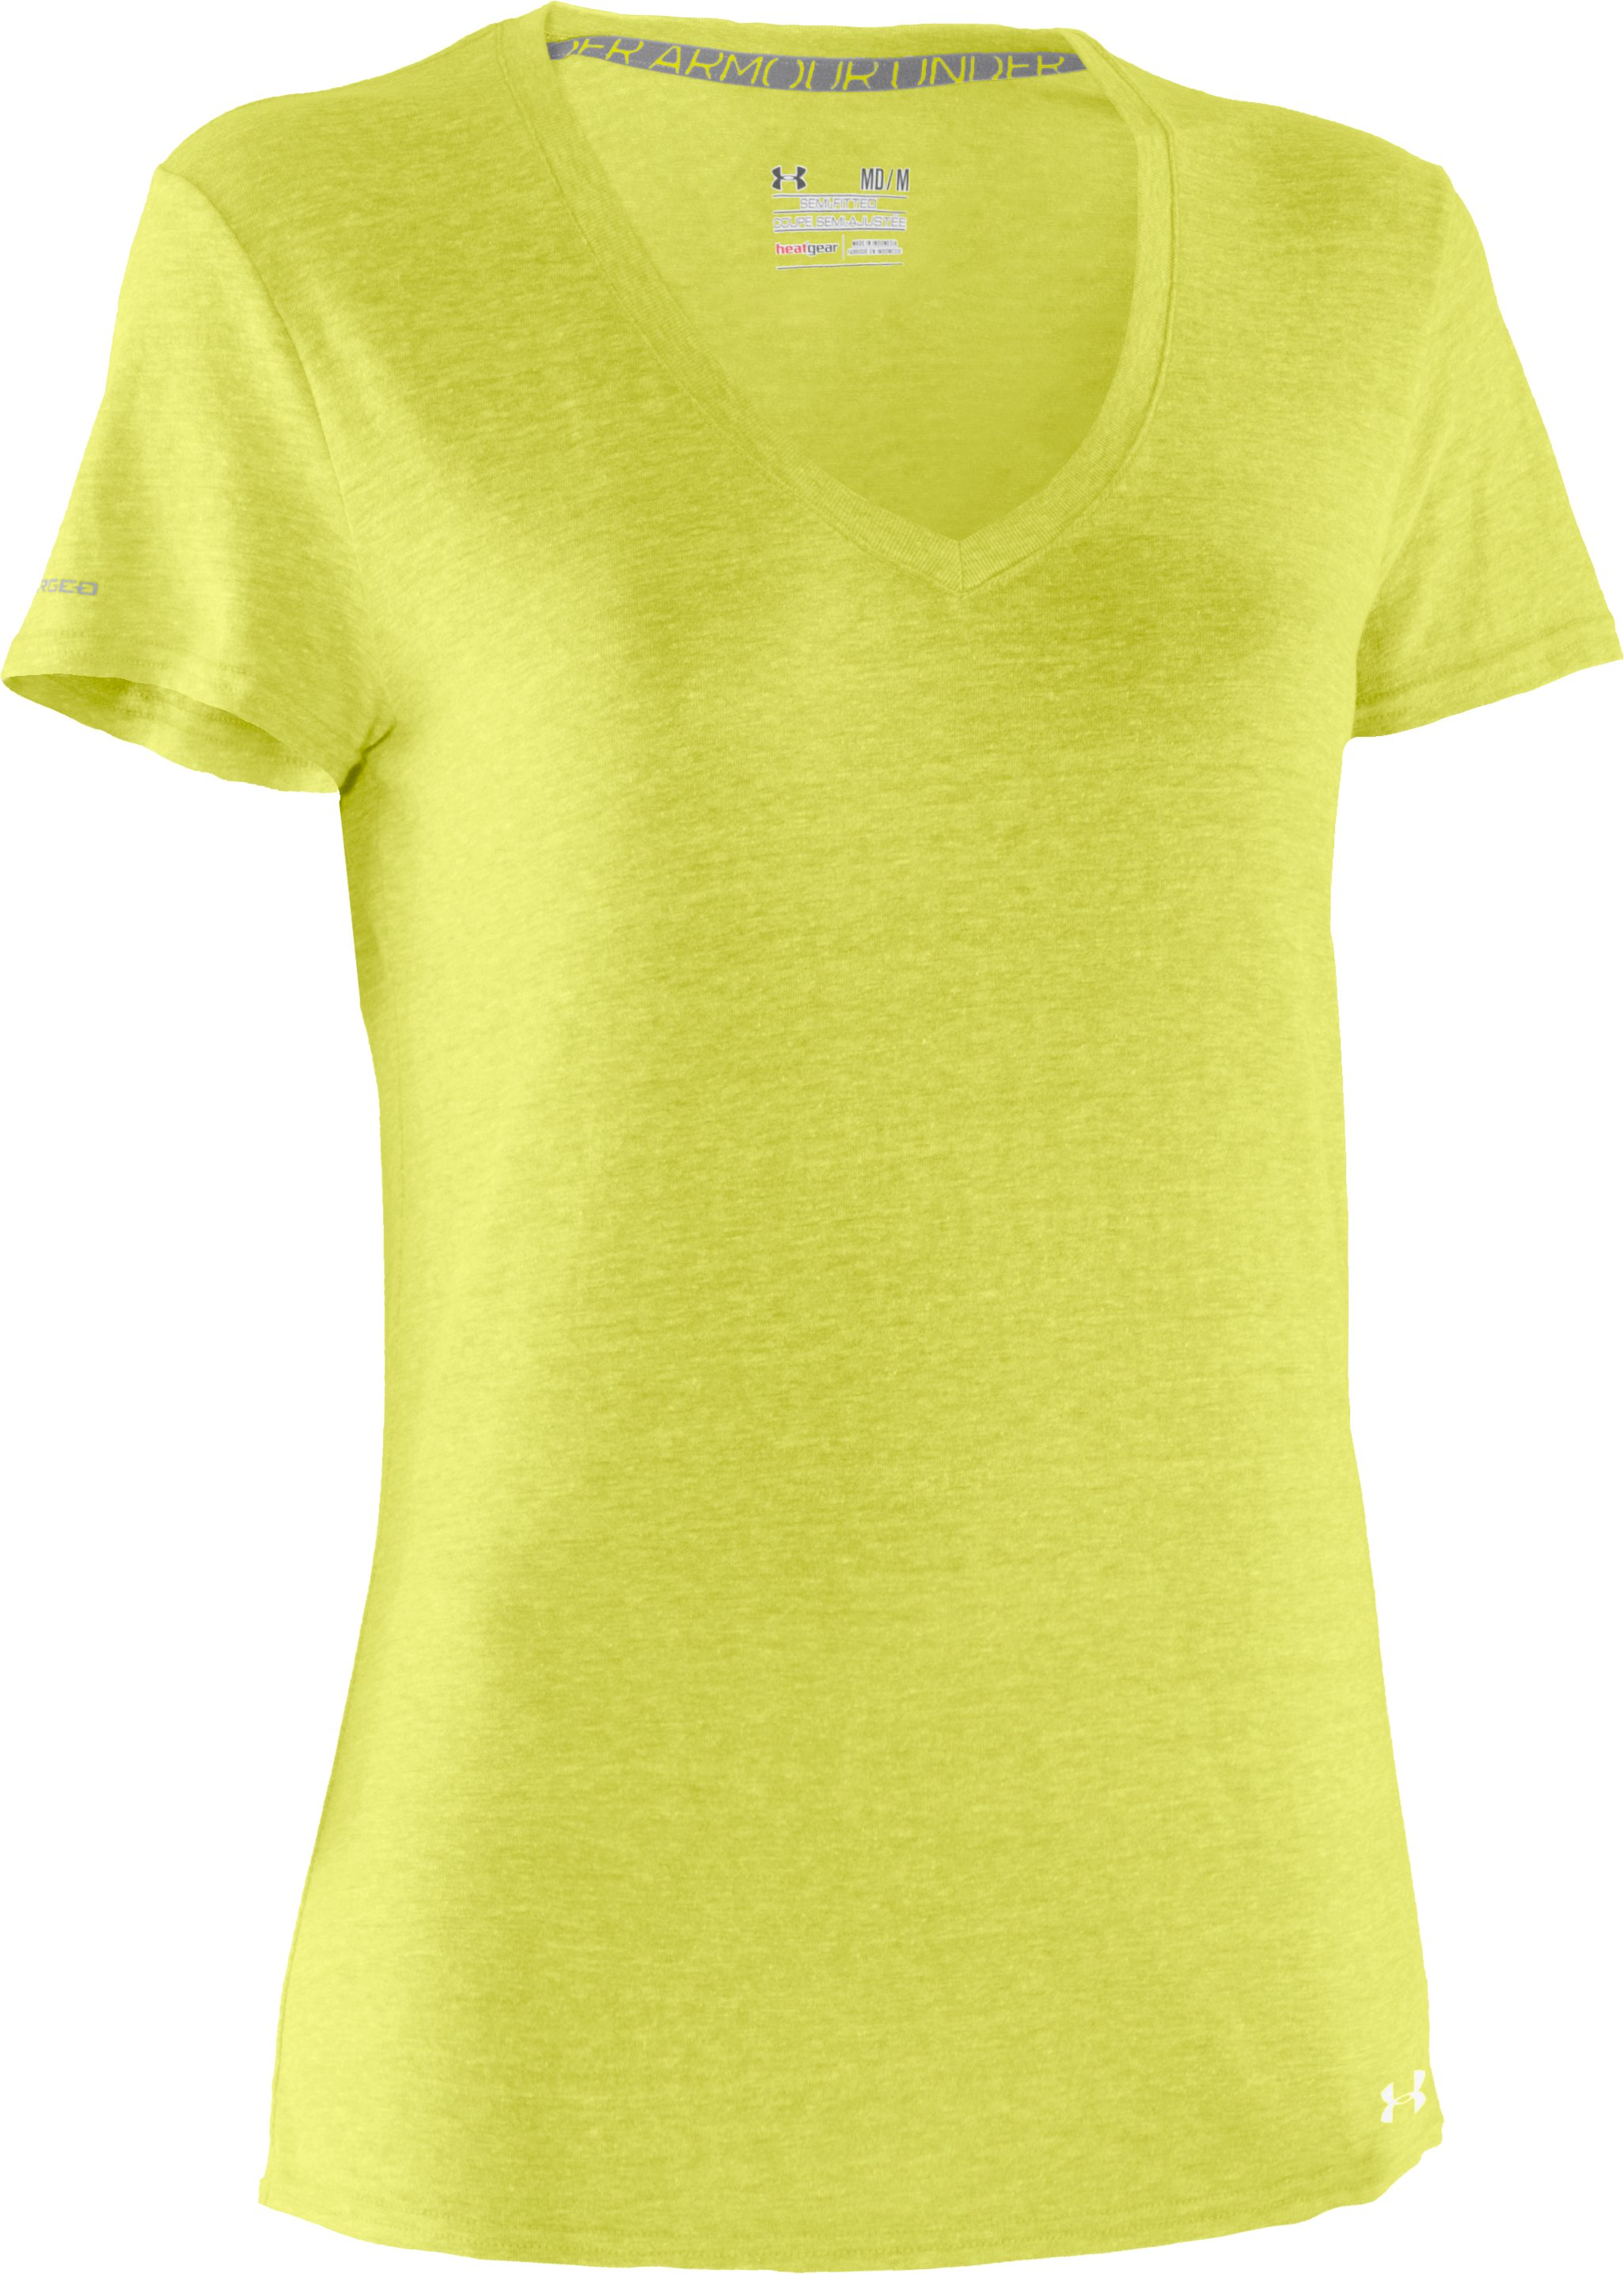 Women's Charged Cotton® Undeniable T-Shirt, High-Vis Yellow